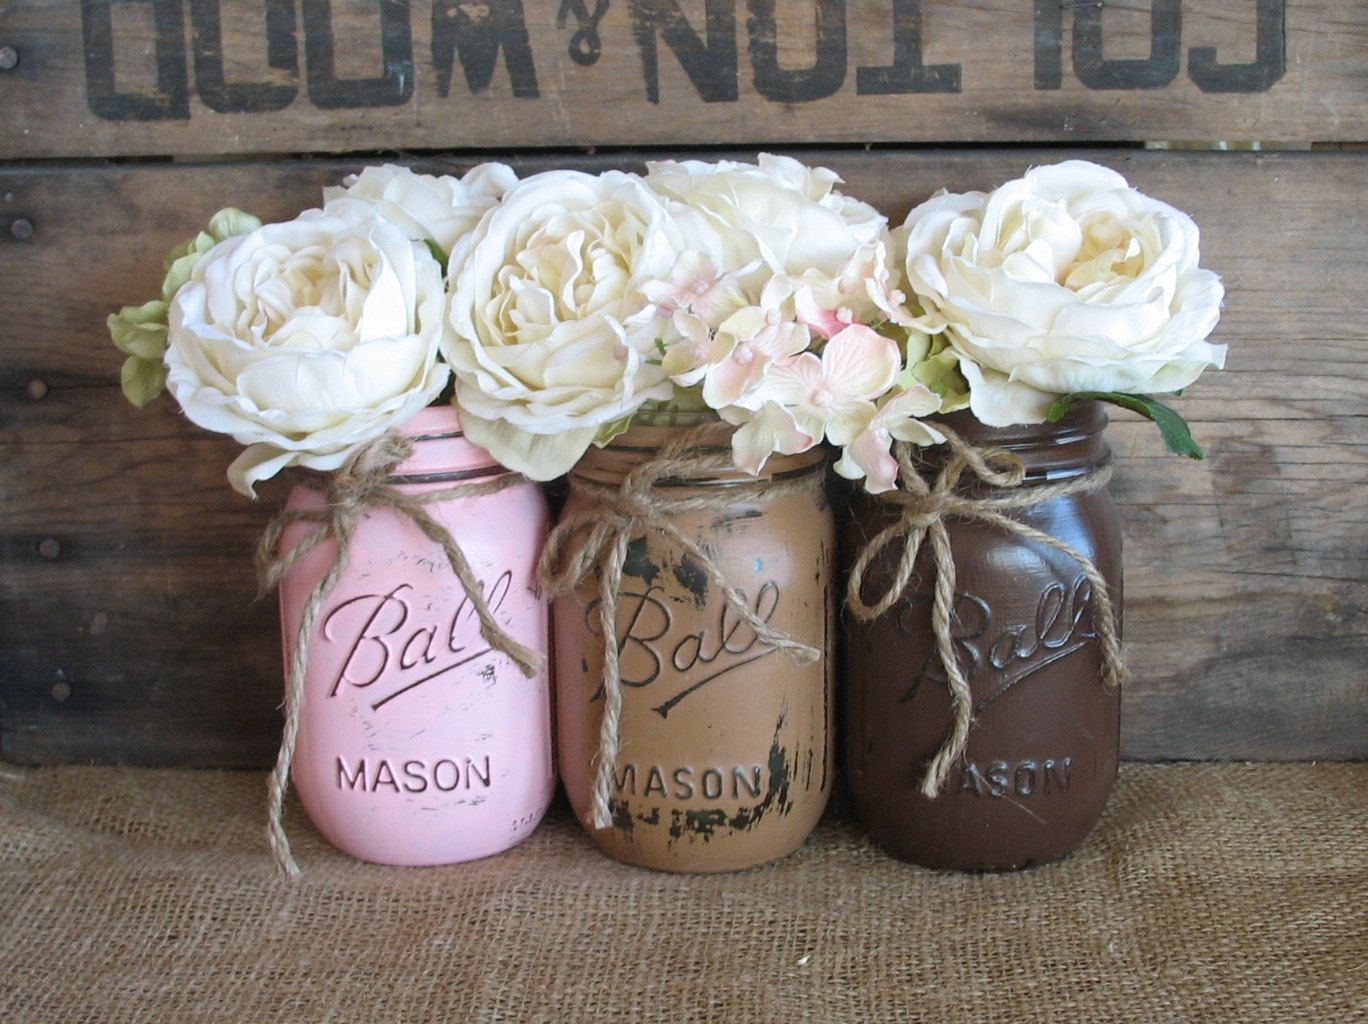 Mason Jar Party Decorations Masonjarsballjarspaintedmasonjarsbytheshabbychicwedding$